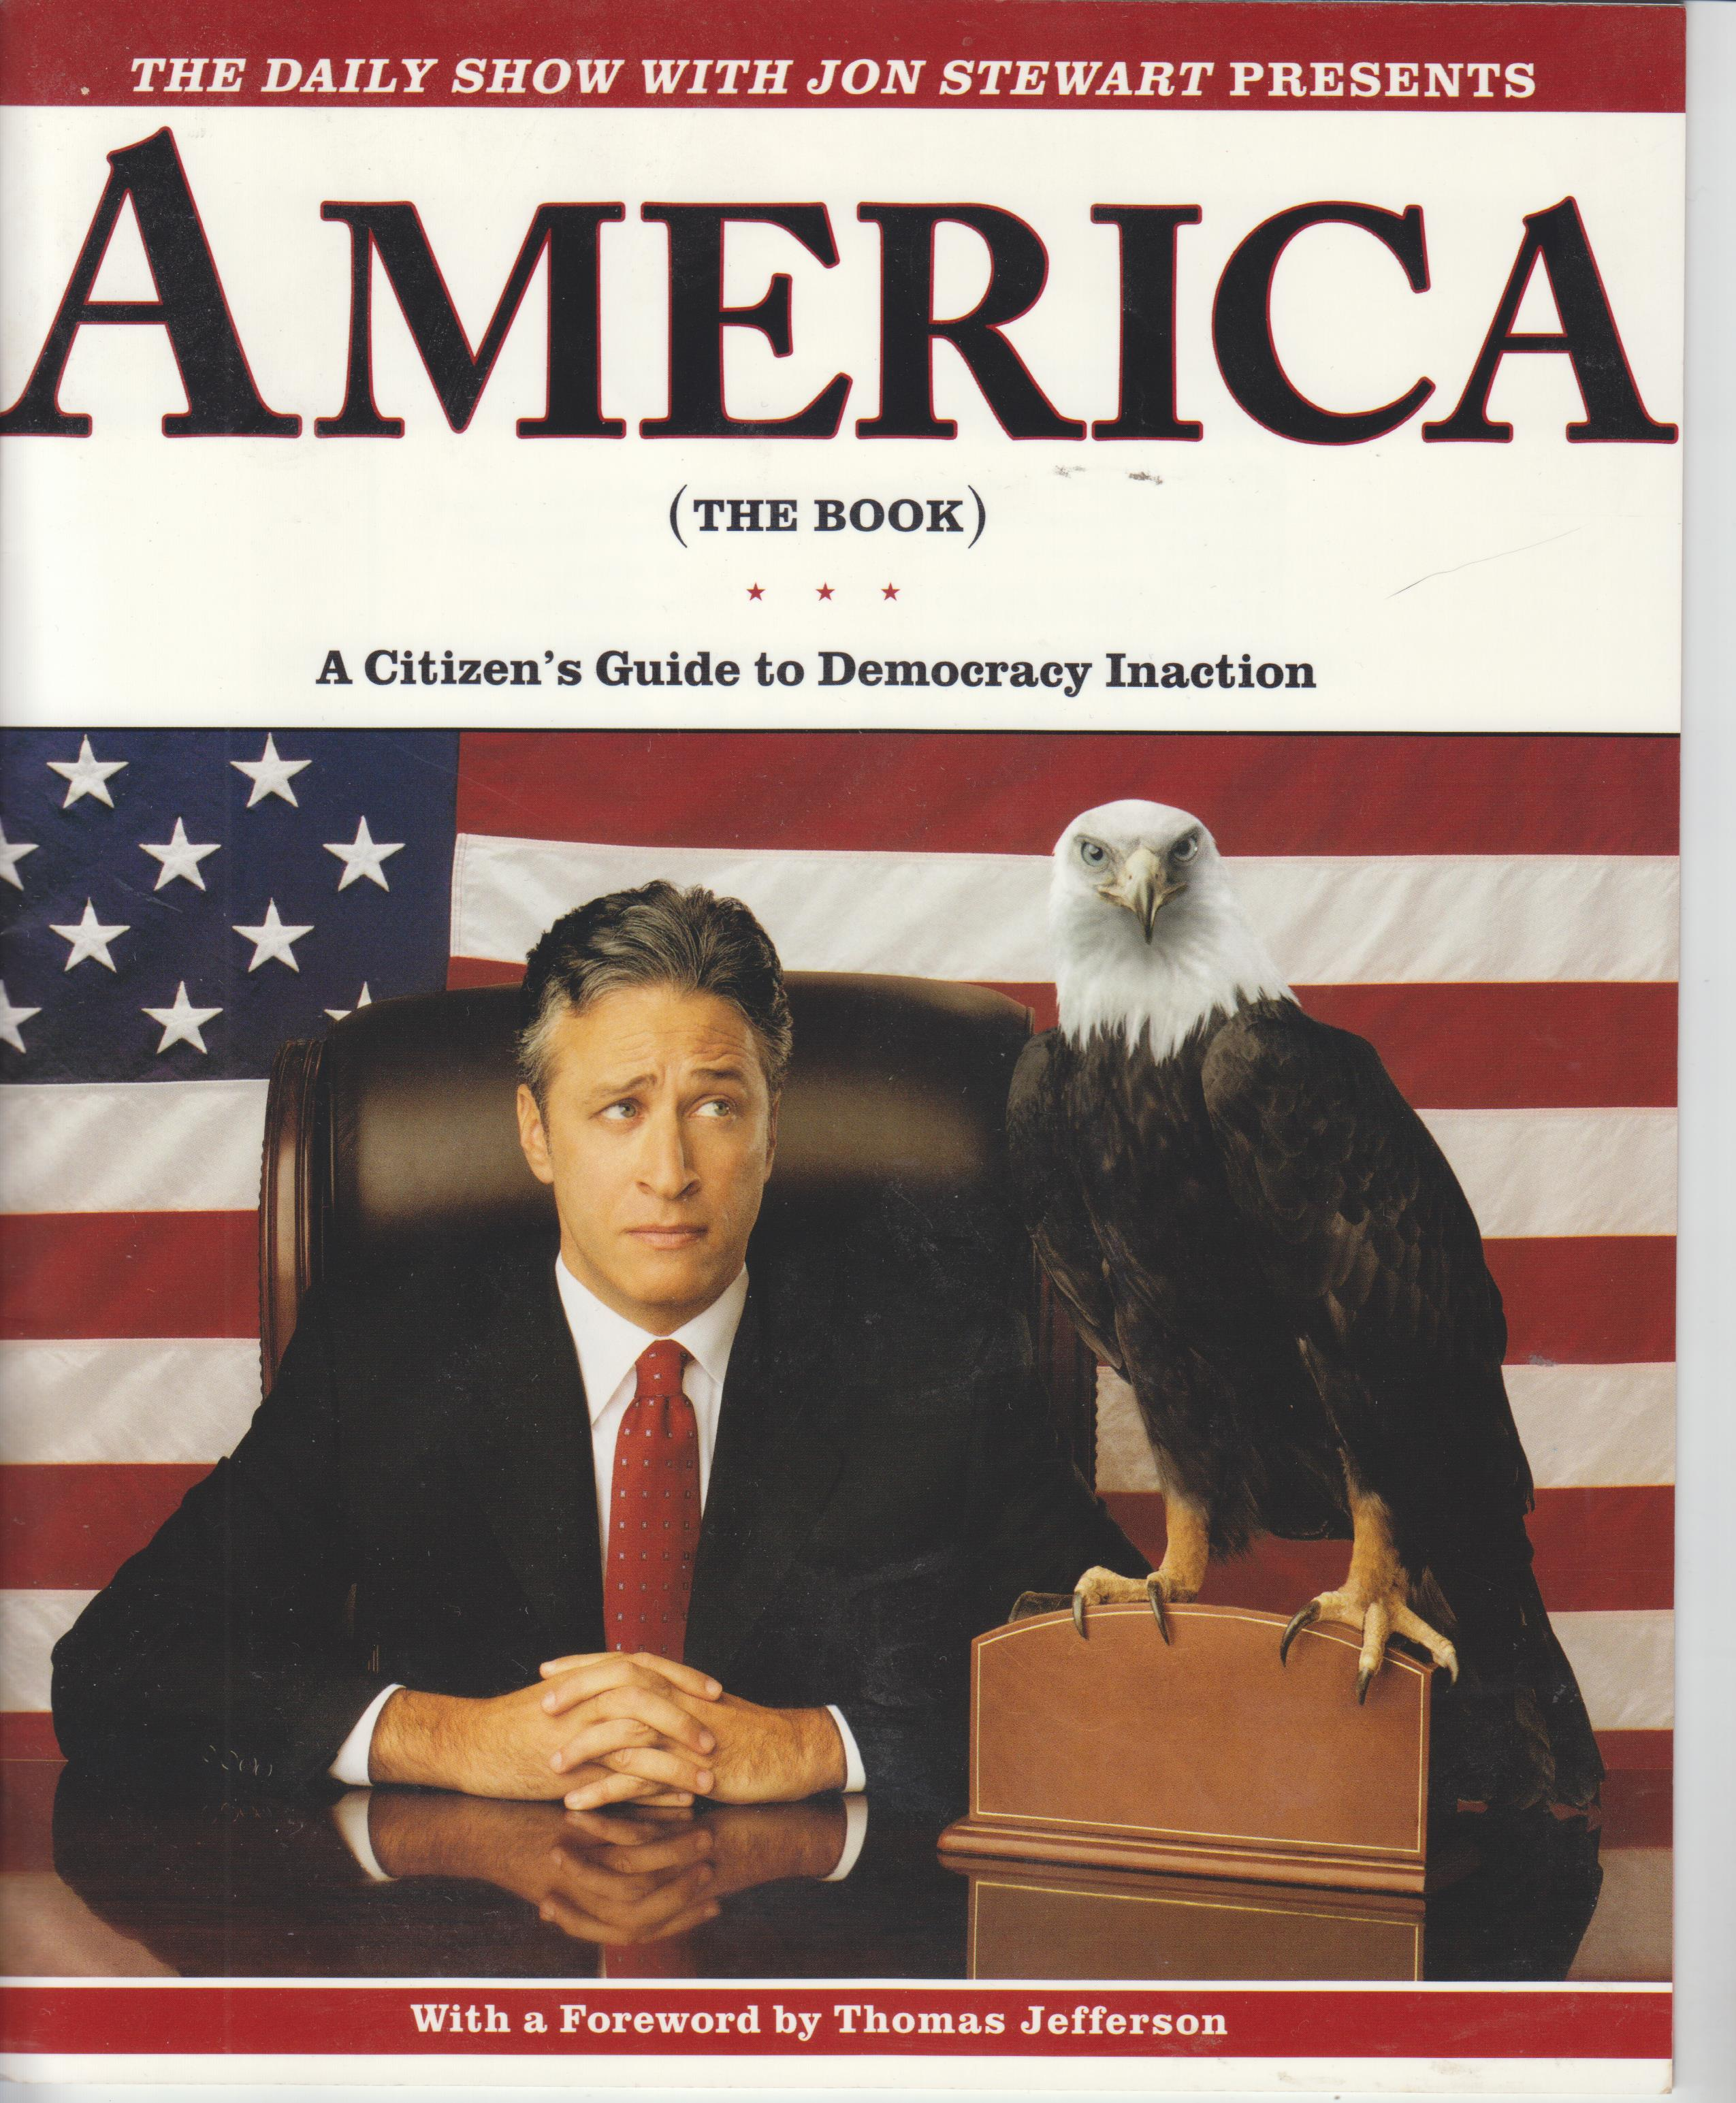 Image for The Daily Show with Jon Stewart Presents America (The Book). A Citizen's Guide to Democracy Inaction